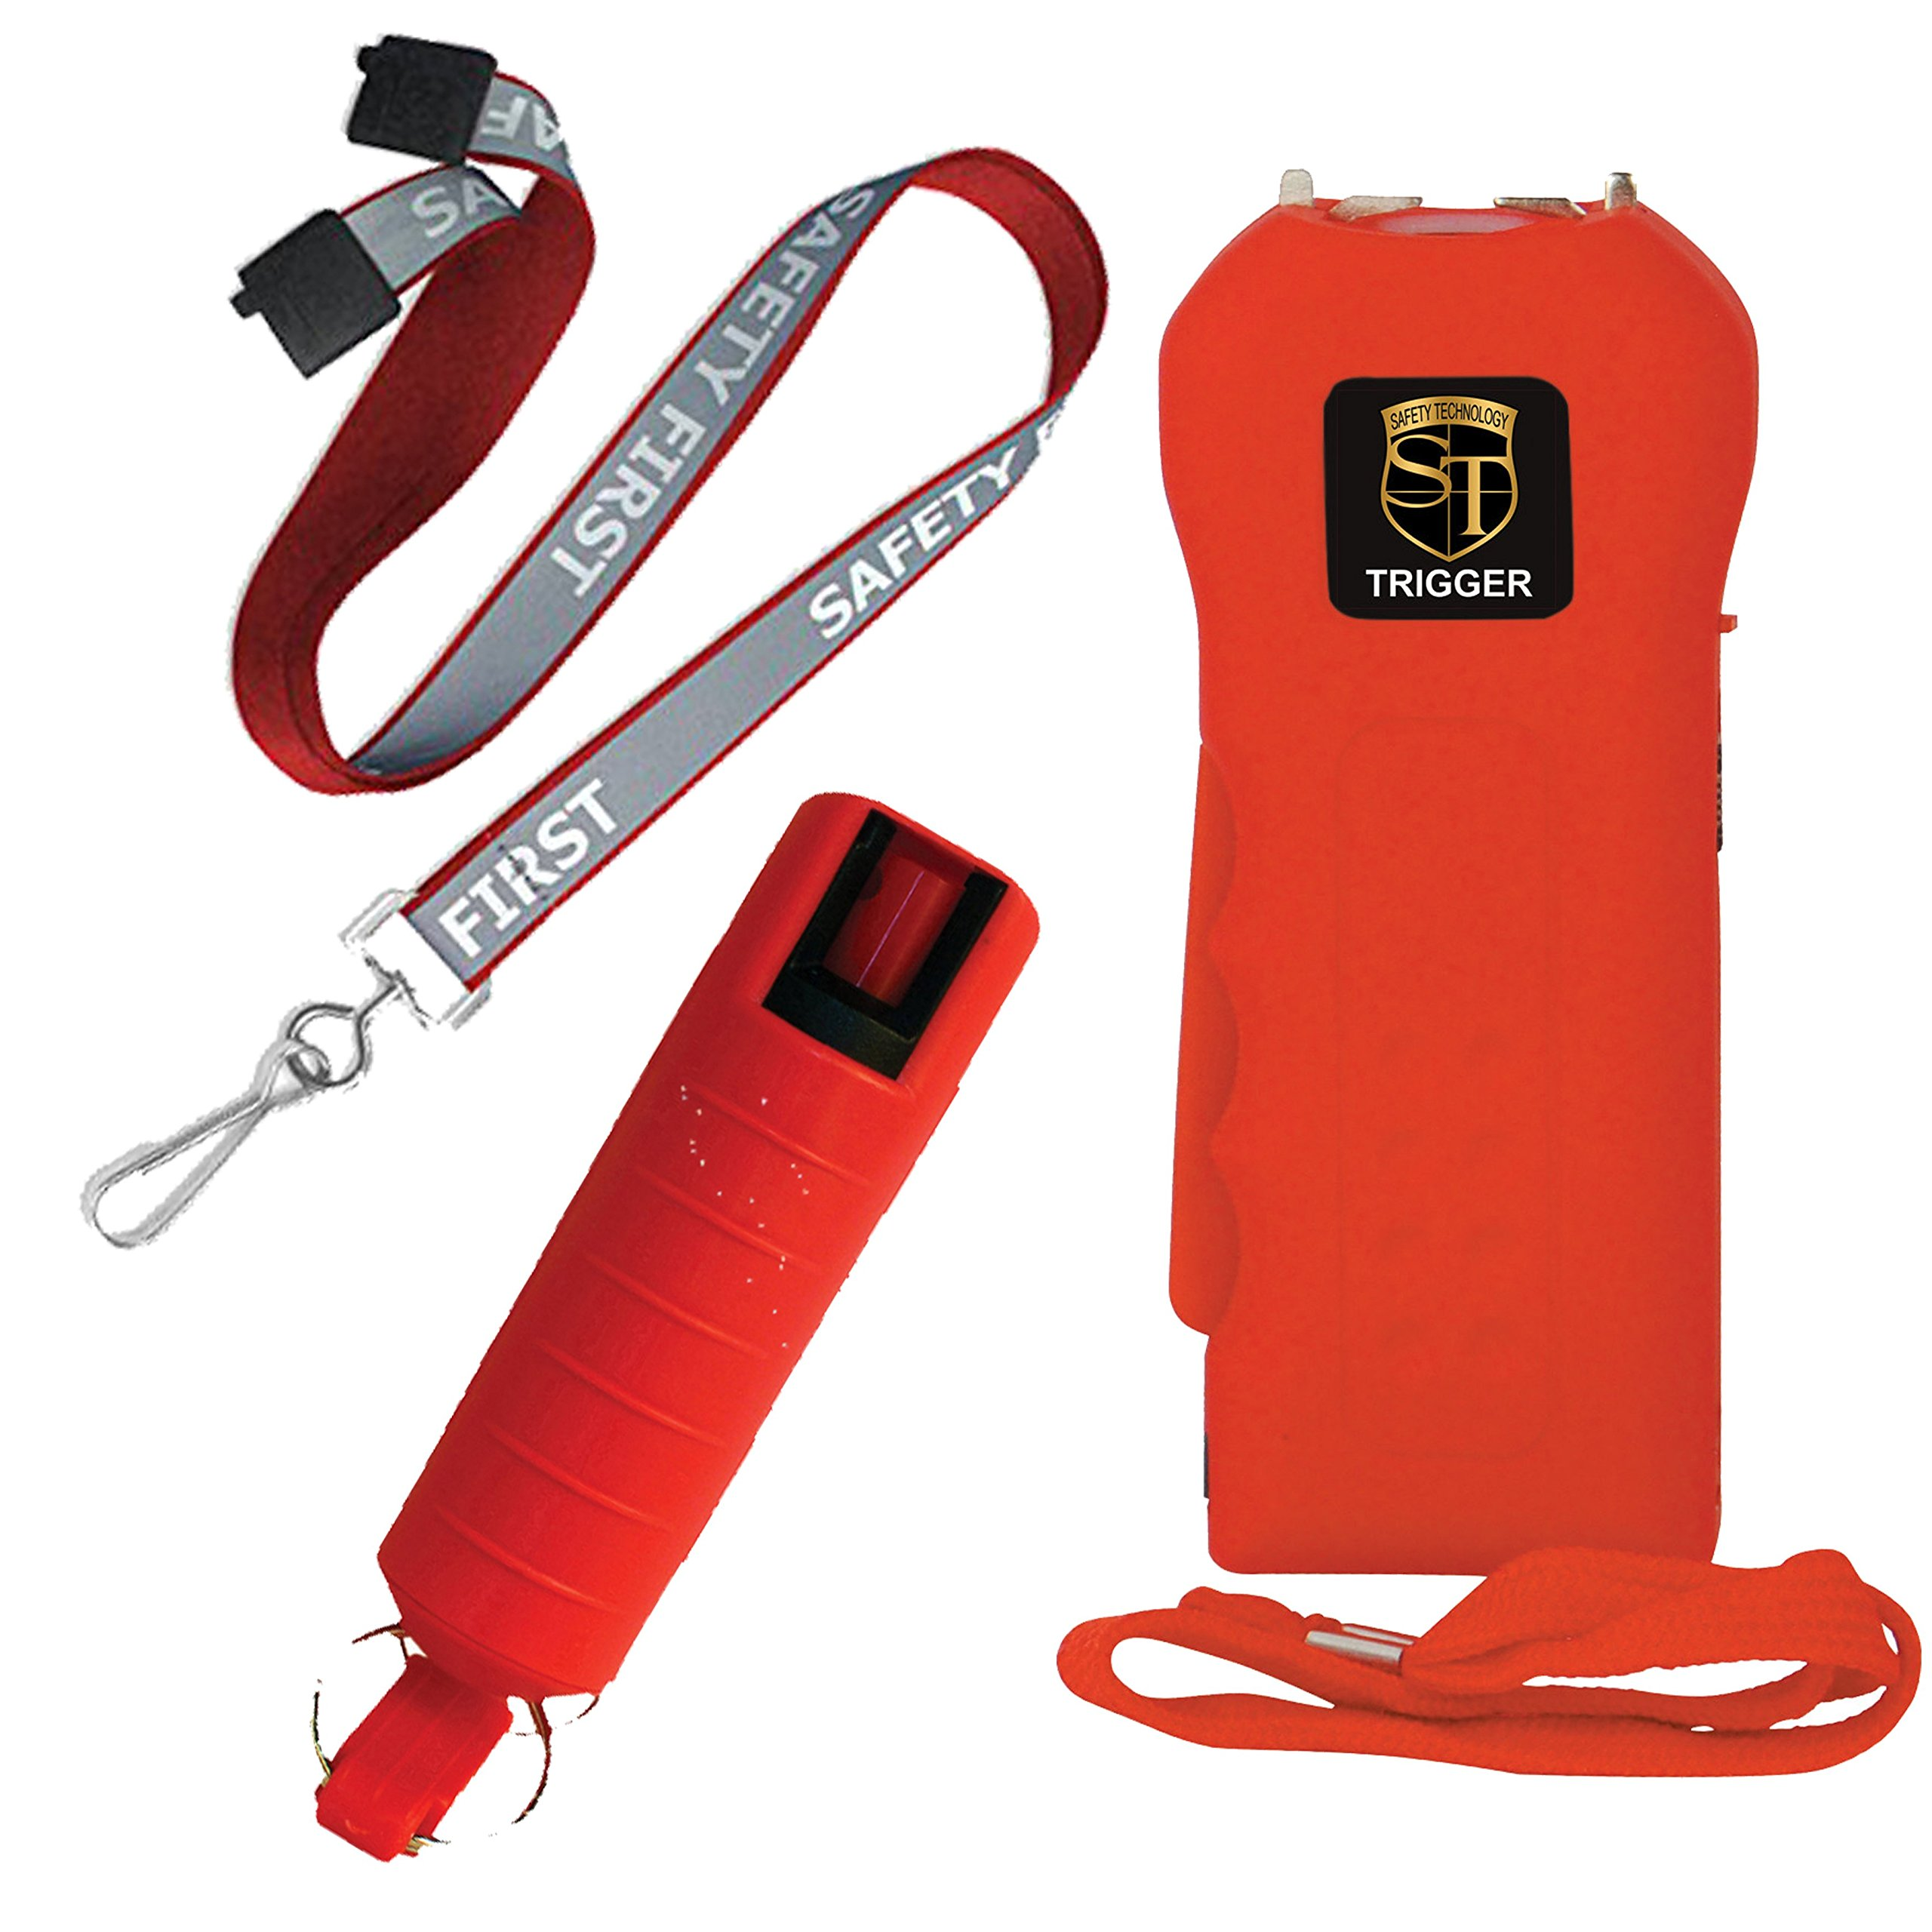 TRIGGER College Safety Bundle 18 MIL Stun Gun, Pepper Shot 10% Pepper Spray and a 36 Inch Reflective Breakaway Lanyard - Lot of 3 as Shown RED